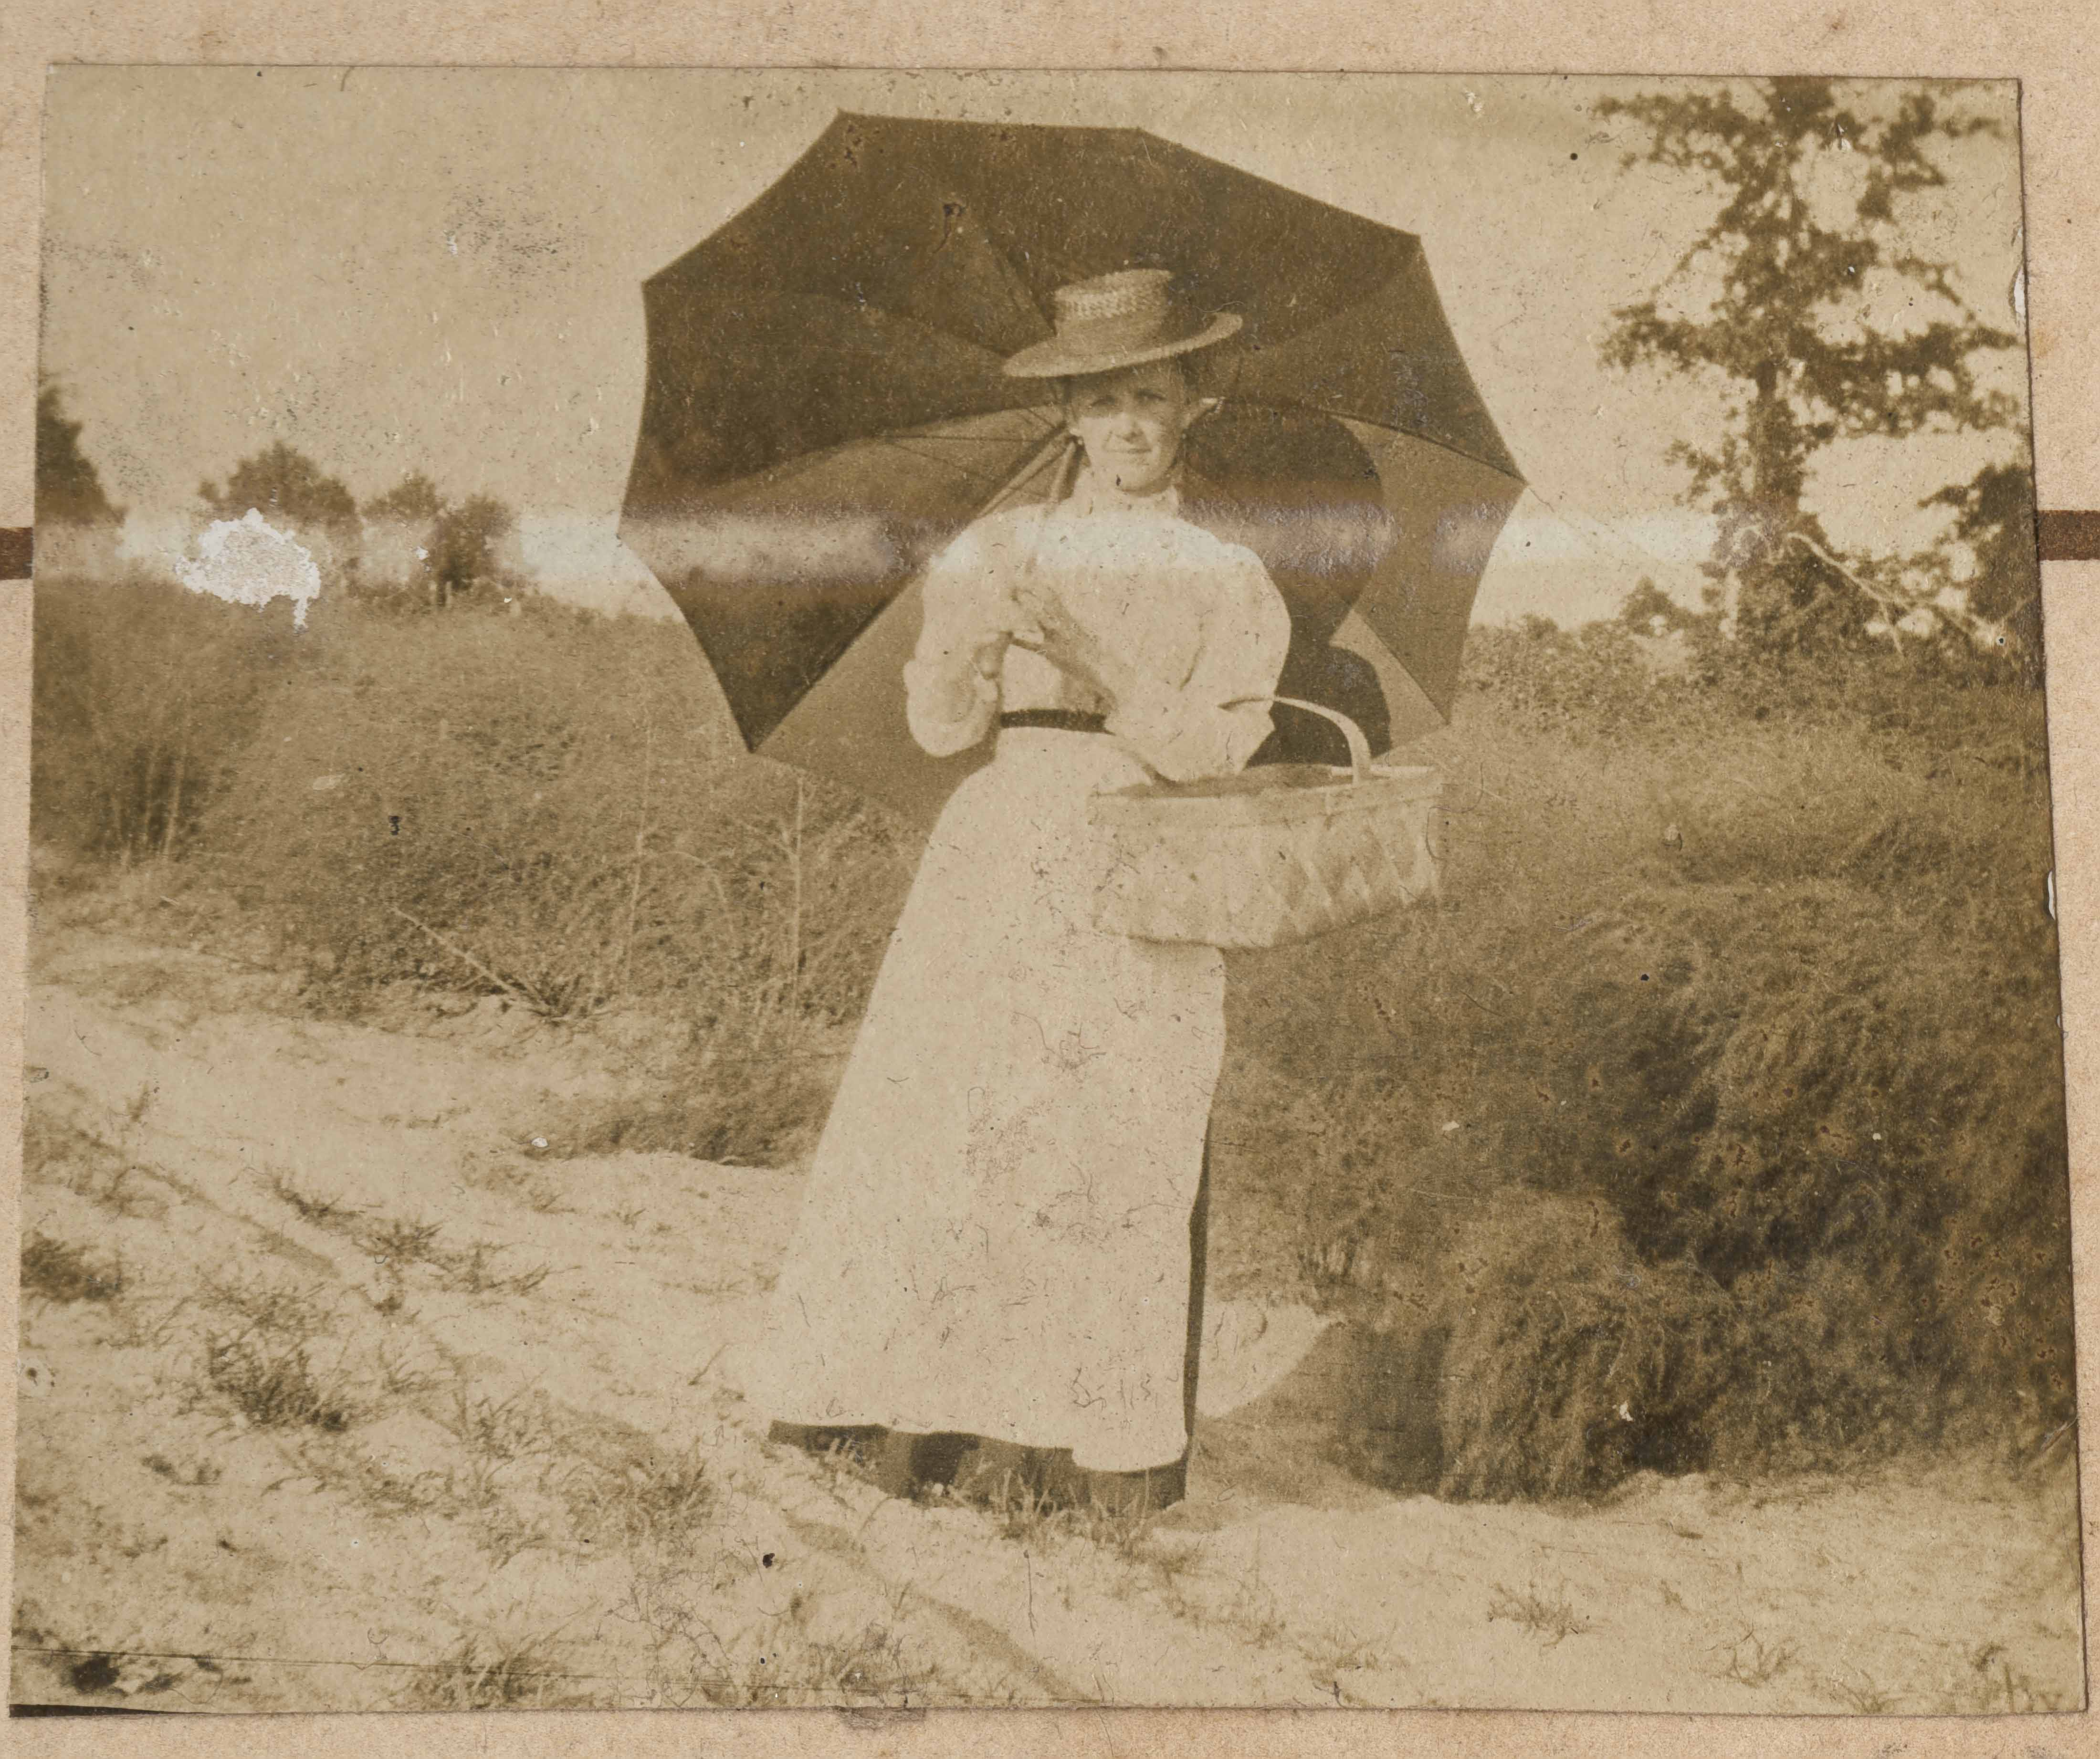 Marie Donner with opened umbrella